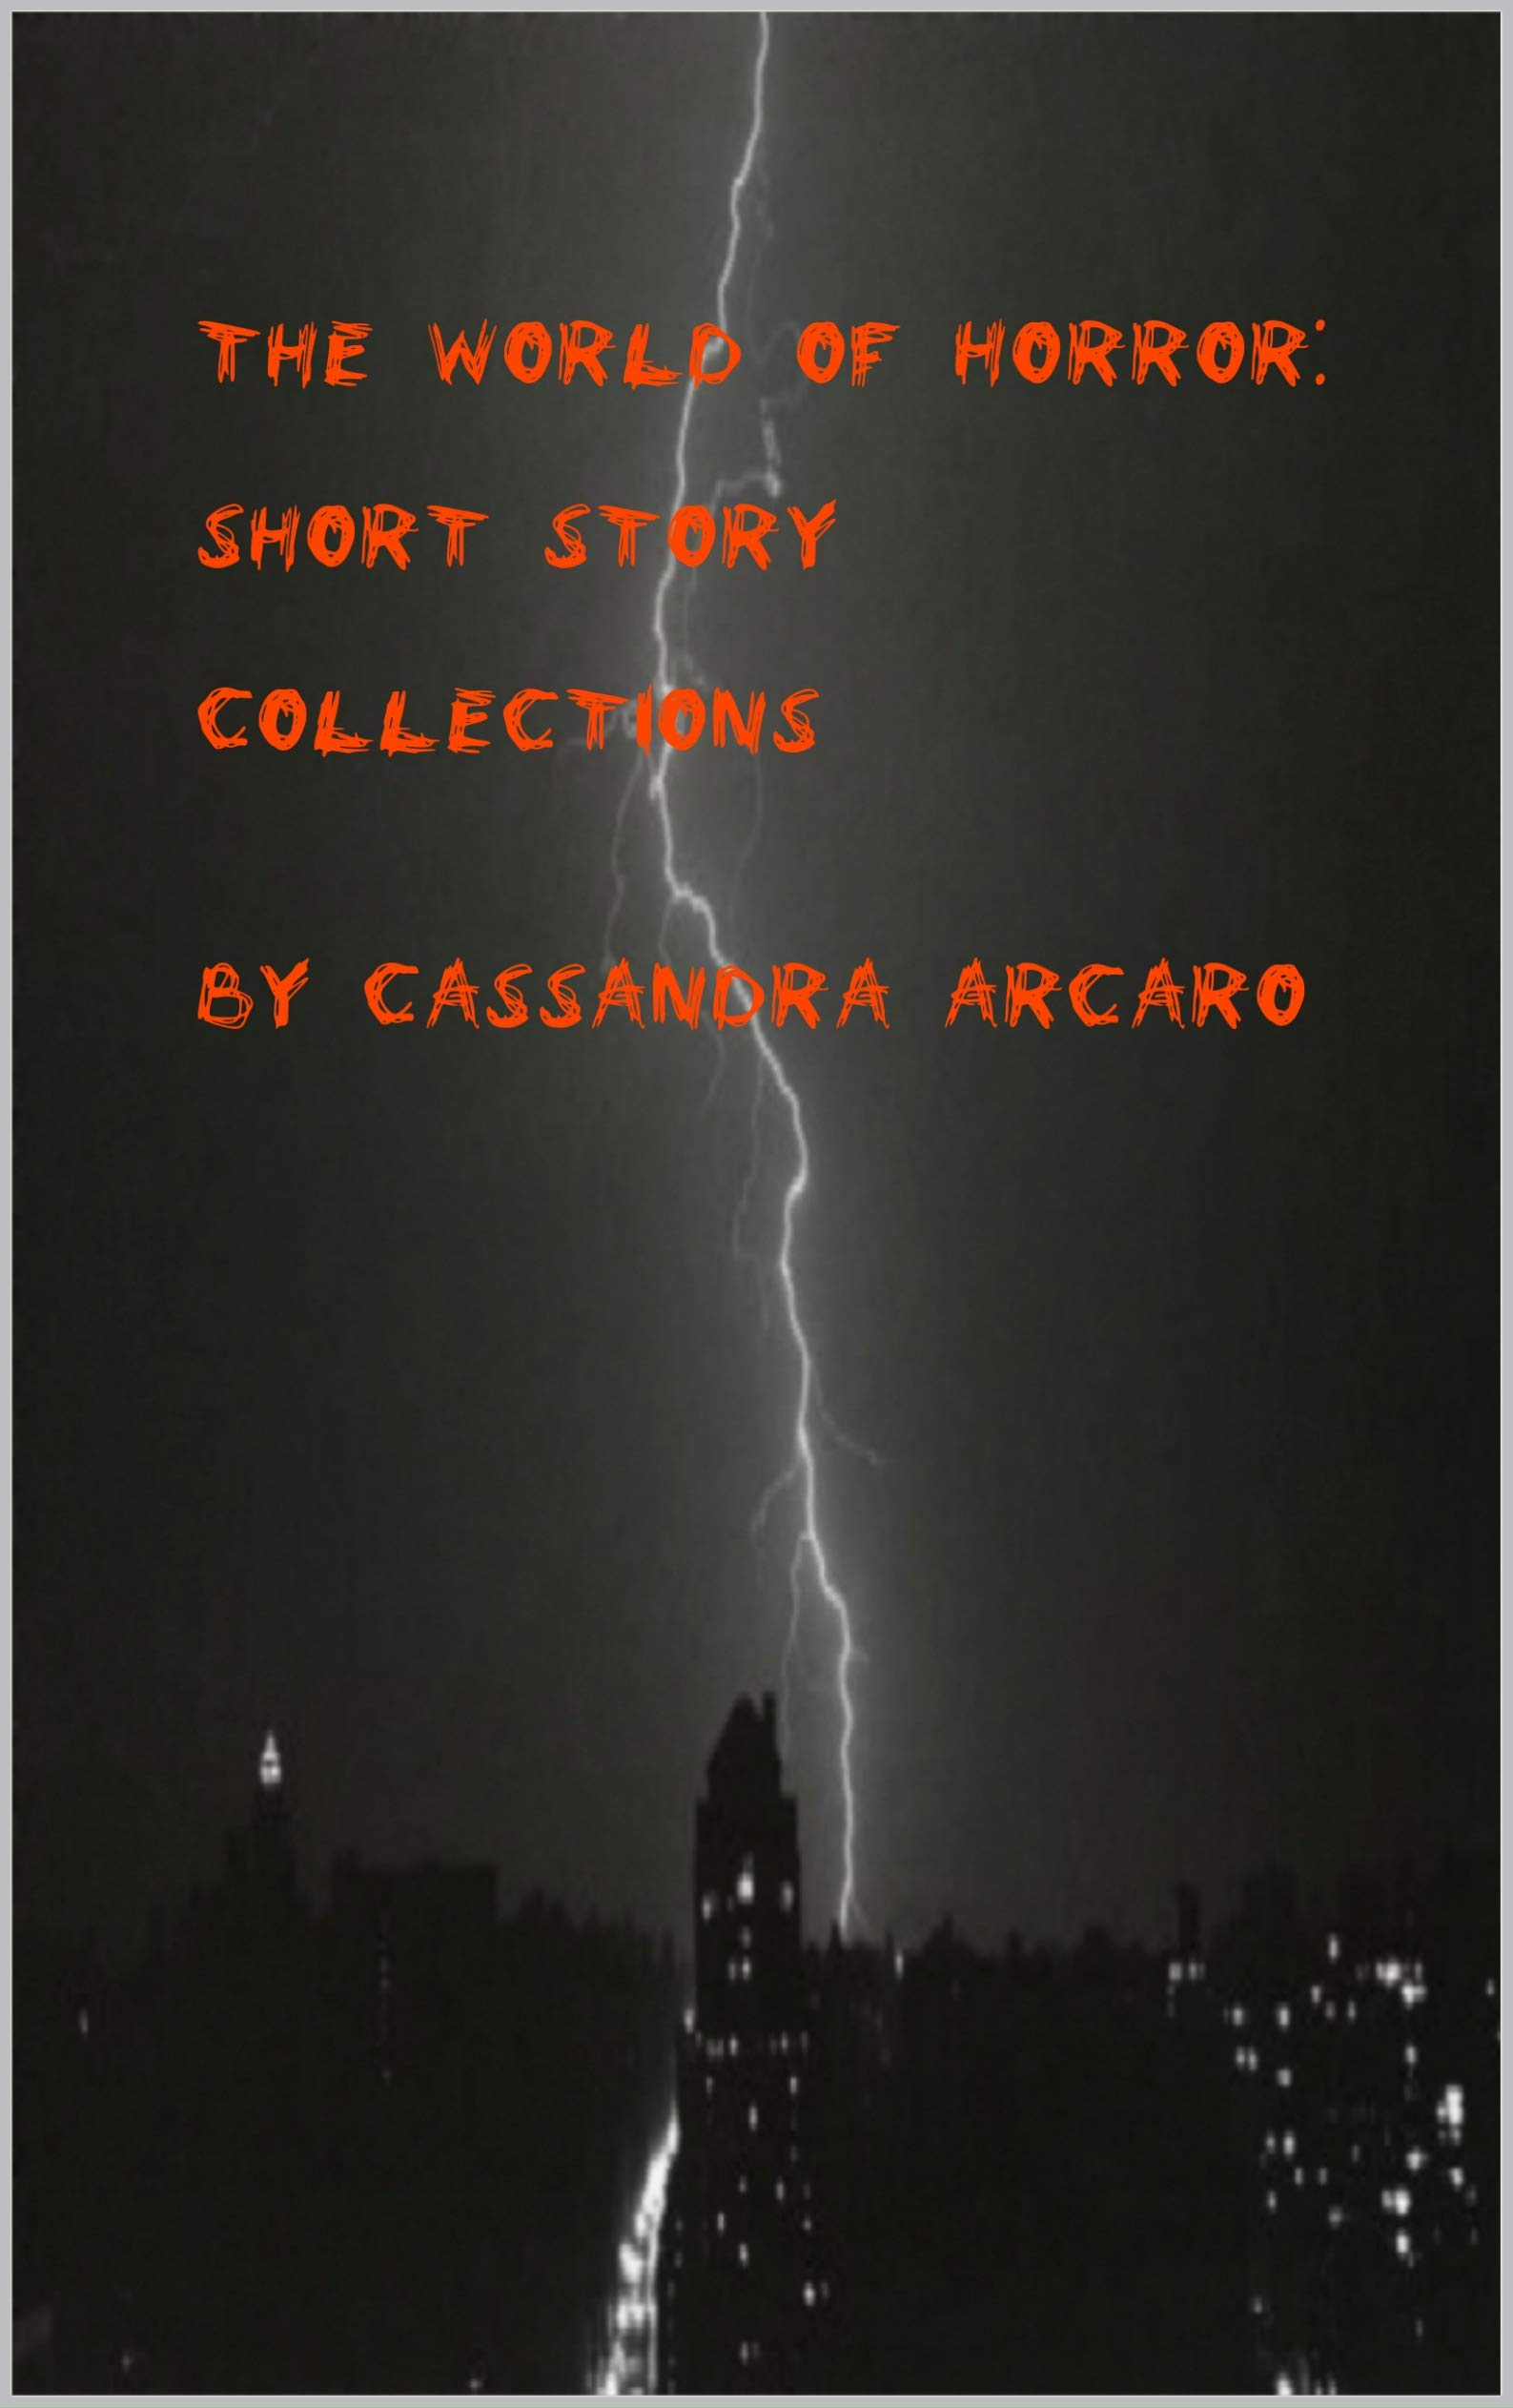 The World of Horror: Short Story Collections